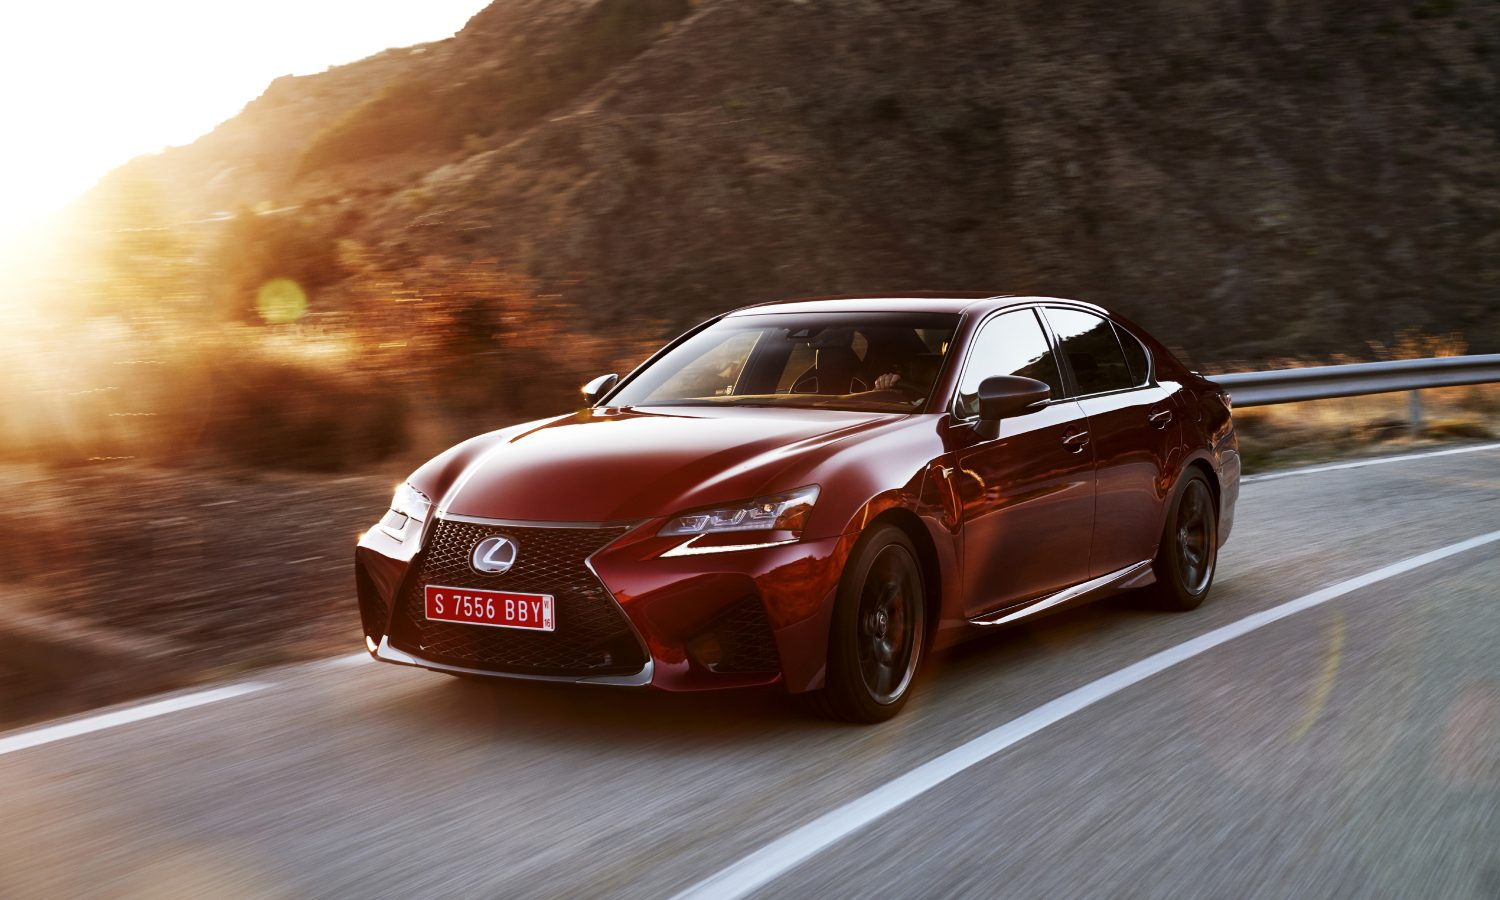 2016 Lexus GS F Performance Sedan Offers a Dynamic Ride, Luxurious Comfort for Five